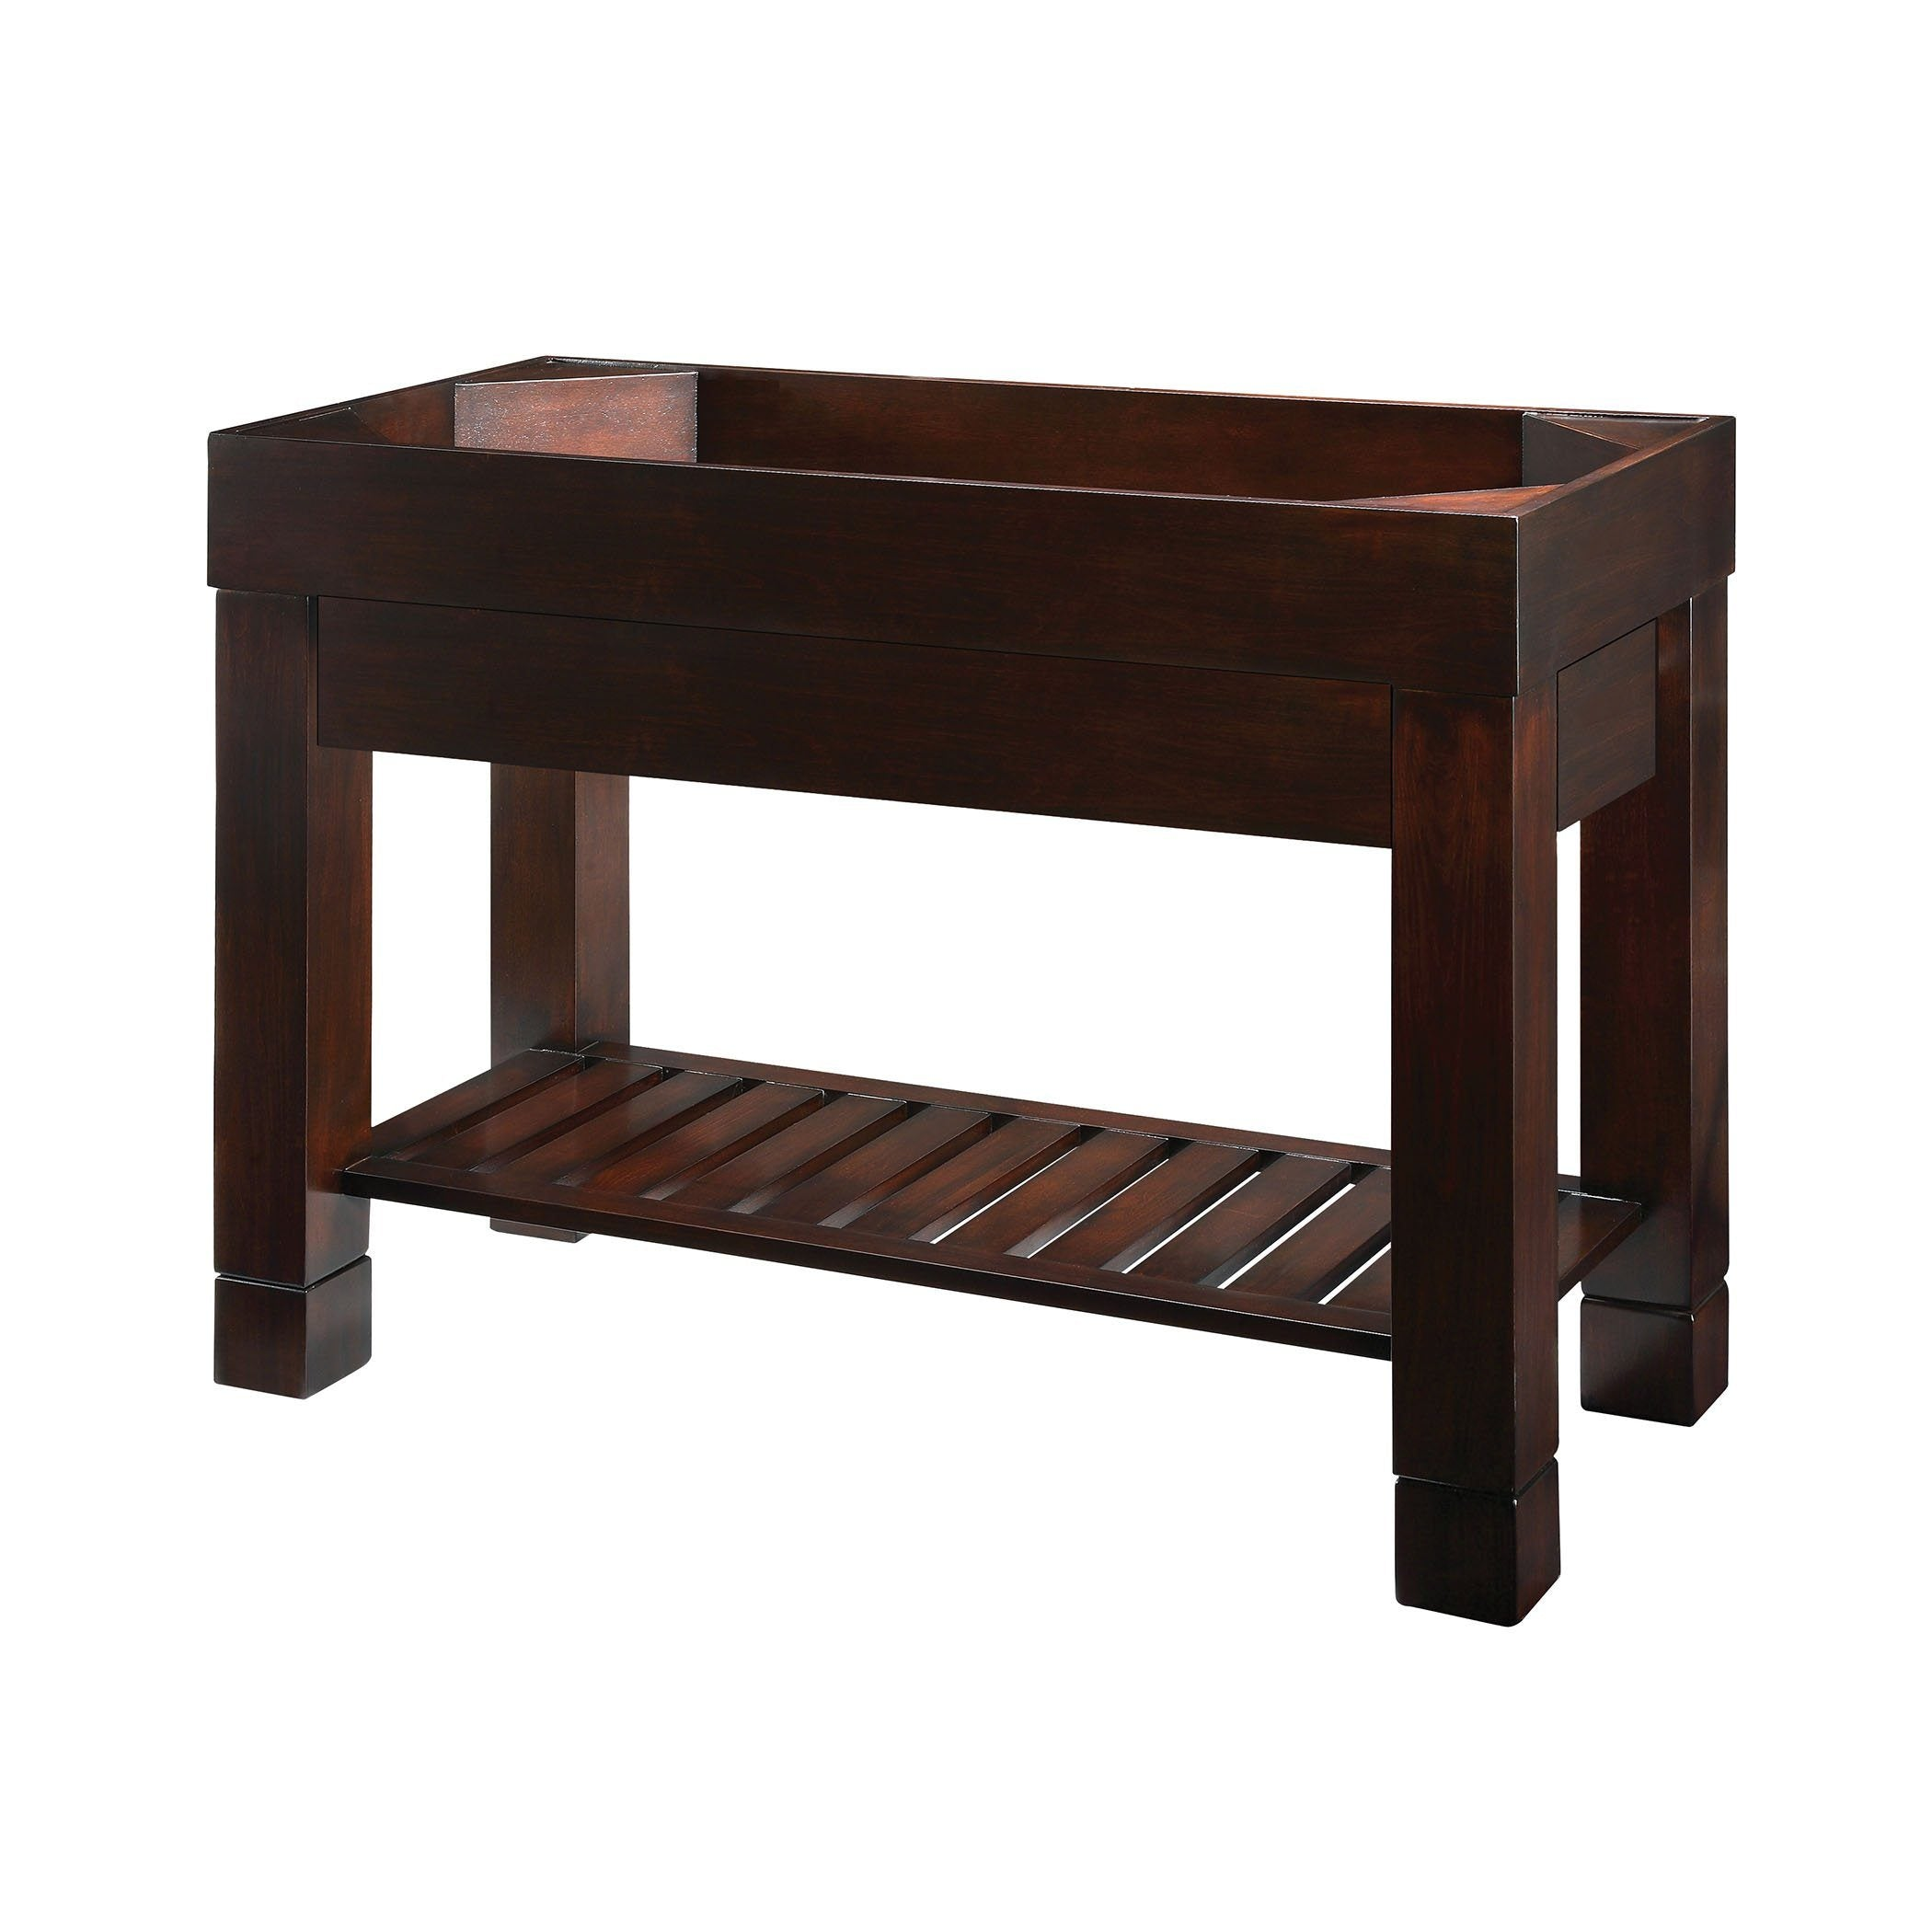 Indus 2 Vanity 48-inch - Dark Walnut Furniture Ryvyr